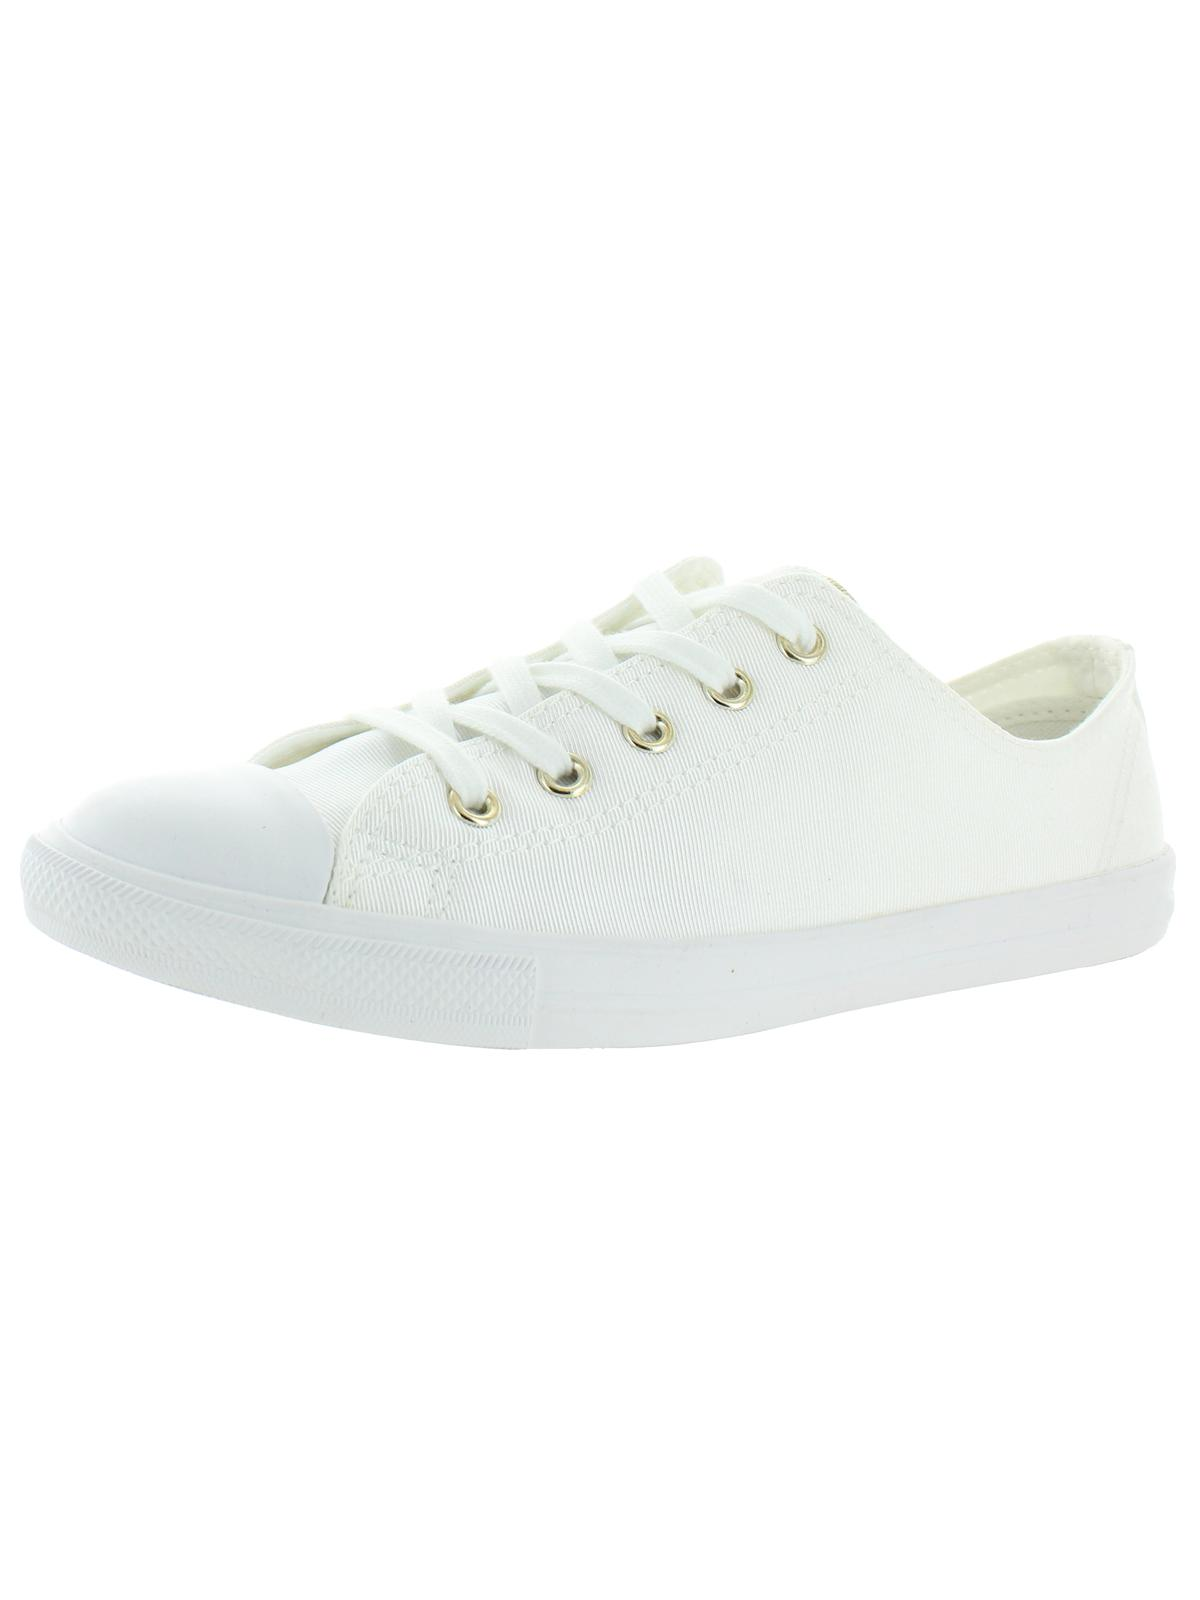 Converse Womens CTAS Dainty Ox Trainers